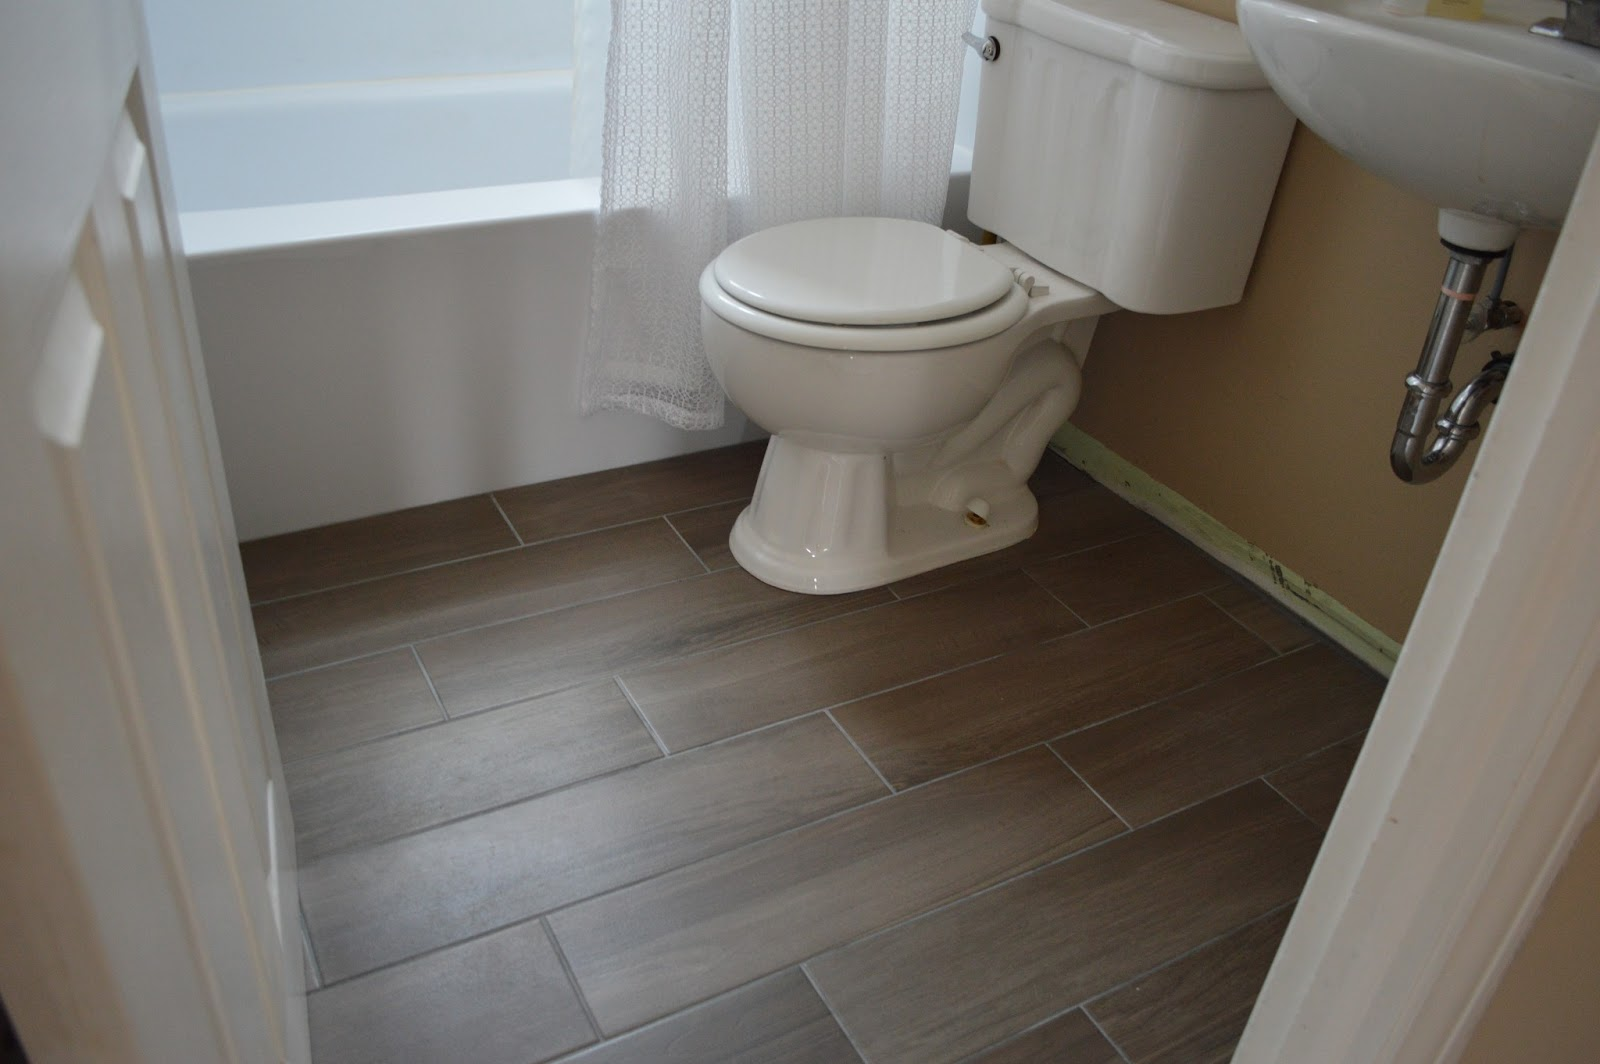 When Your Tile Grout Turns White, This May Work... {Bathroom Progress}